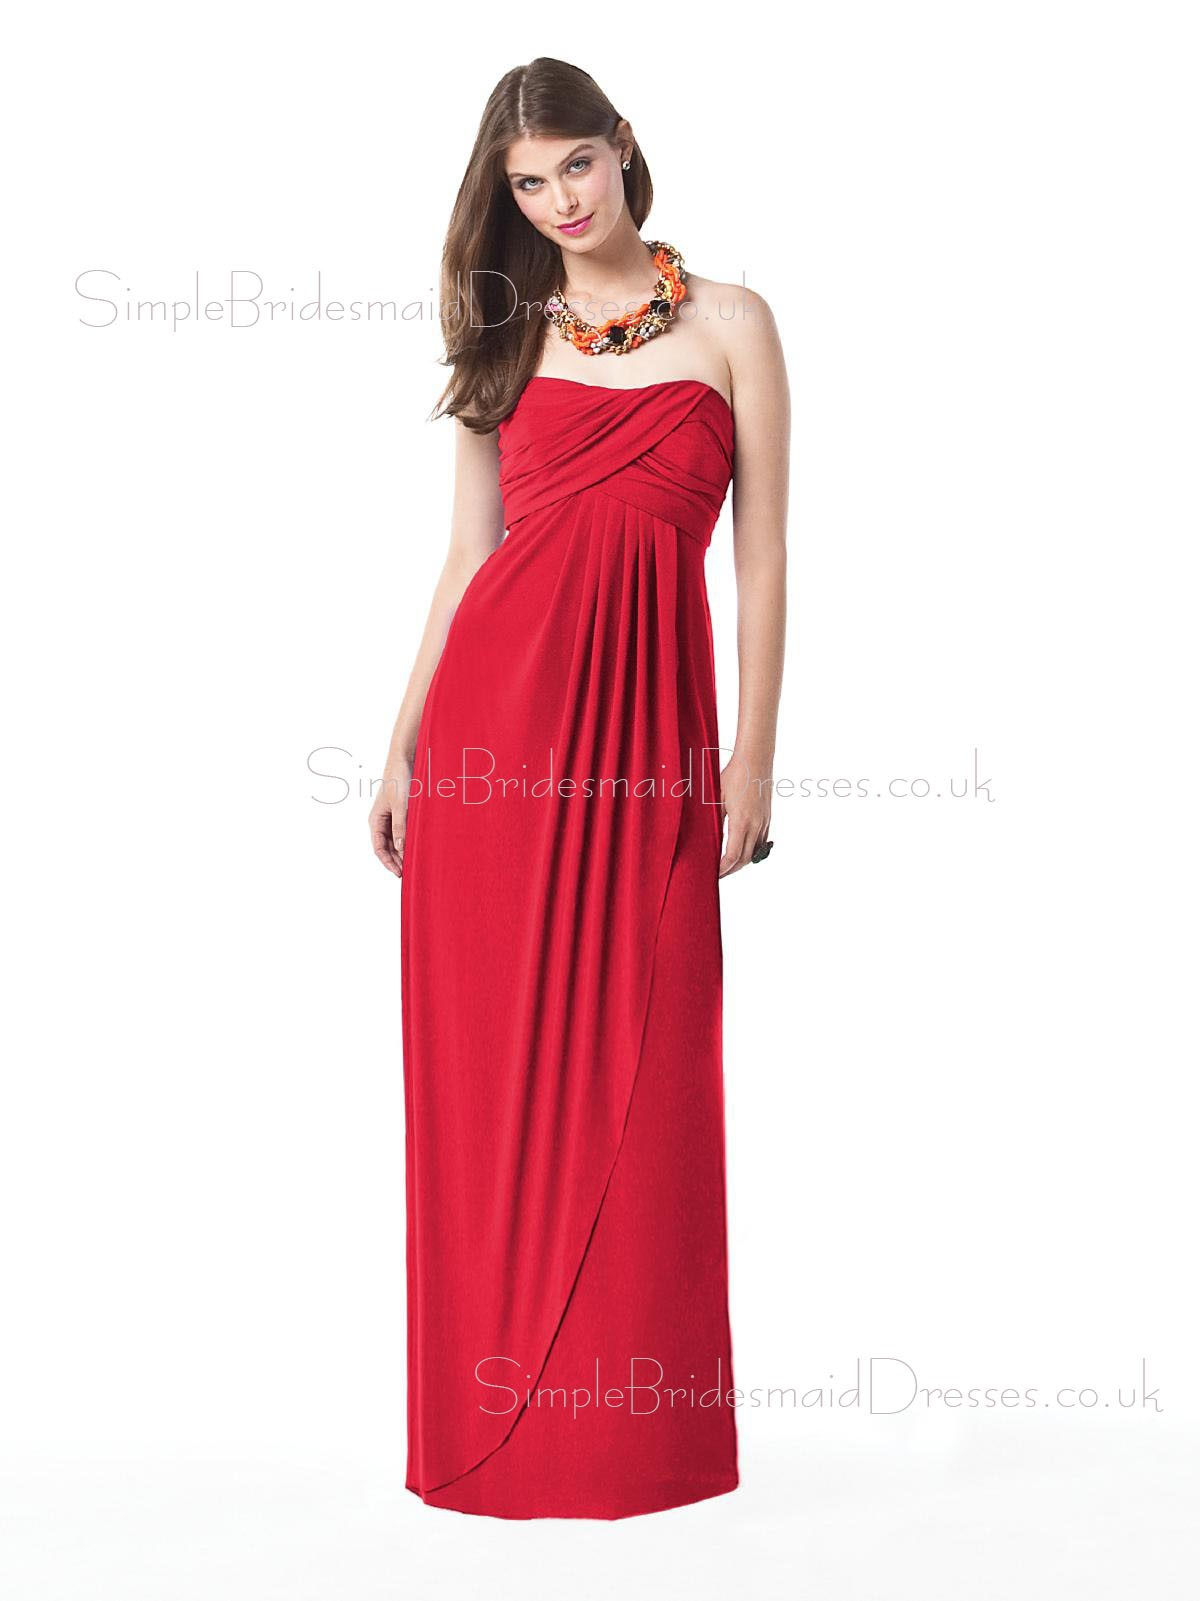 Cheap dark red bridesmaid dresses dark red bridesmaid dresses zipper red a line floor length strapless bridesmaid dress ombrellifo Choice Image